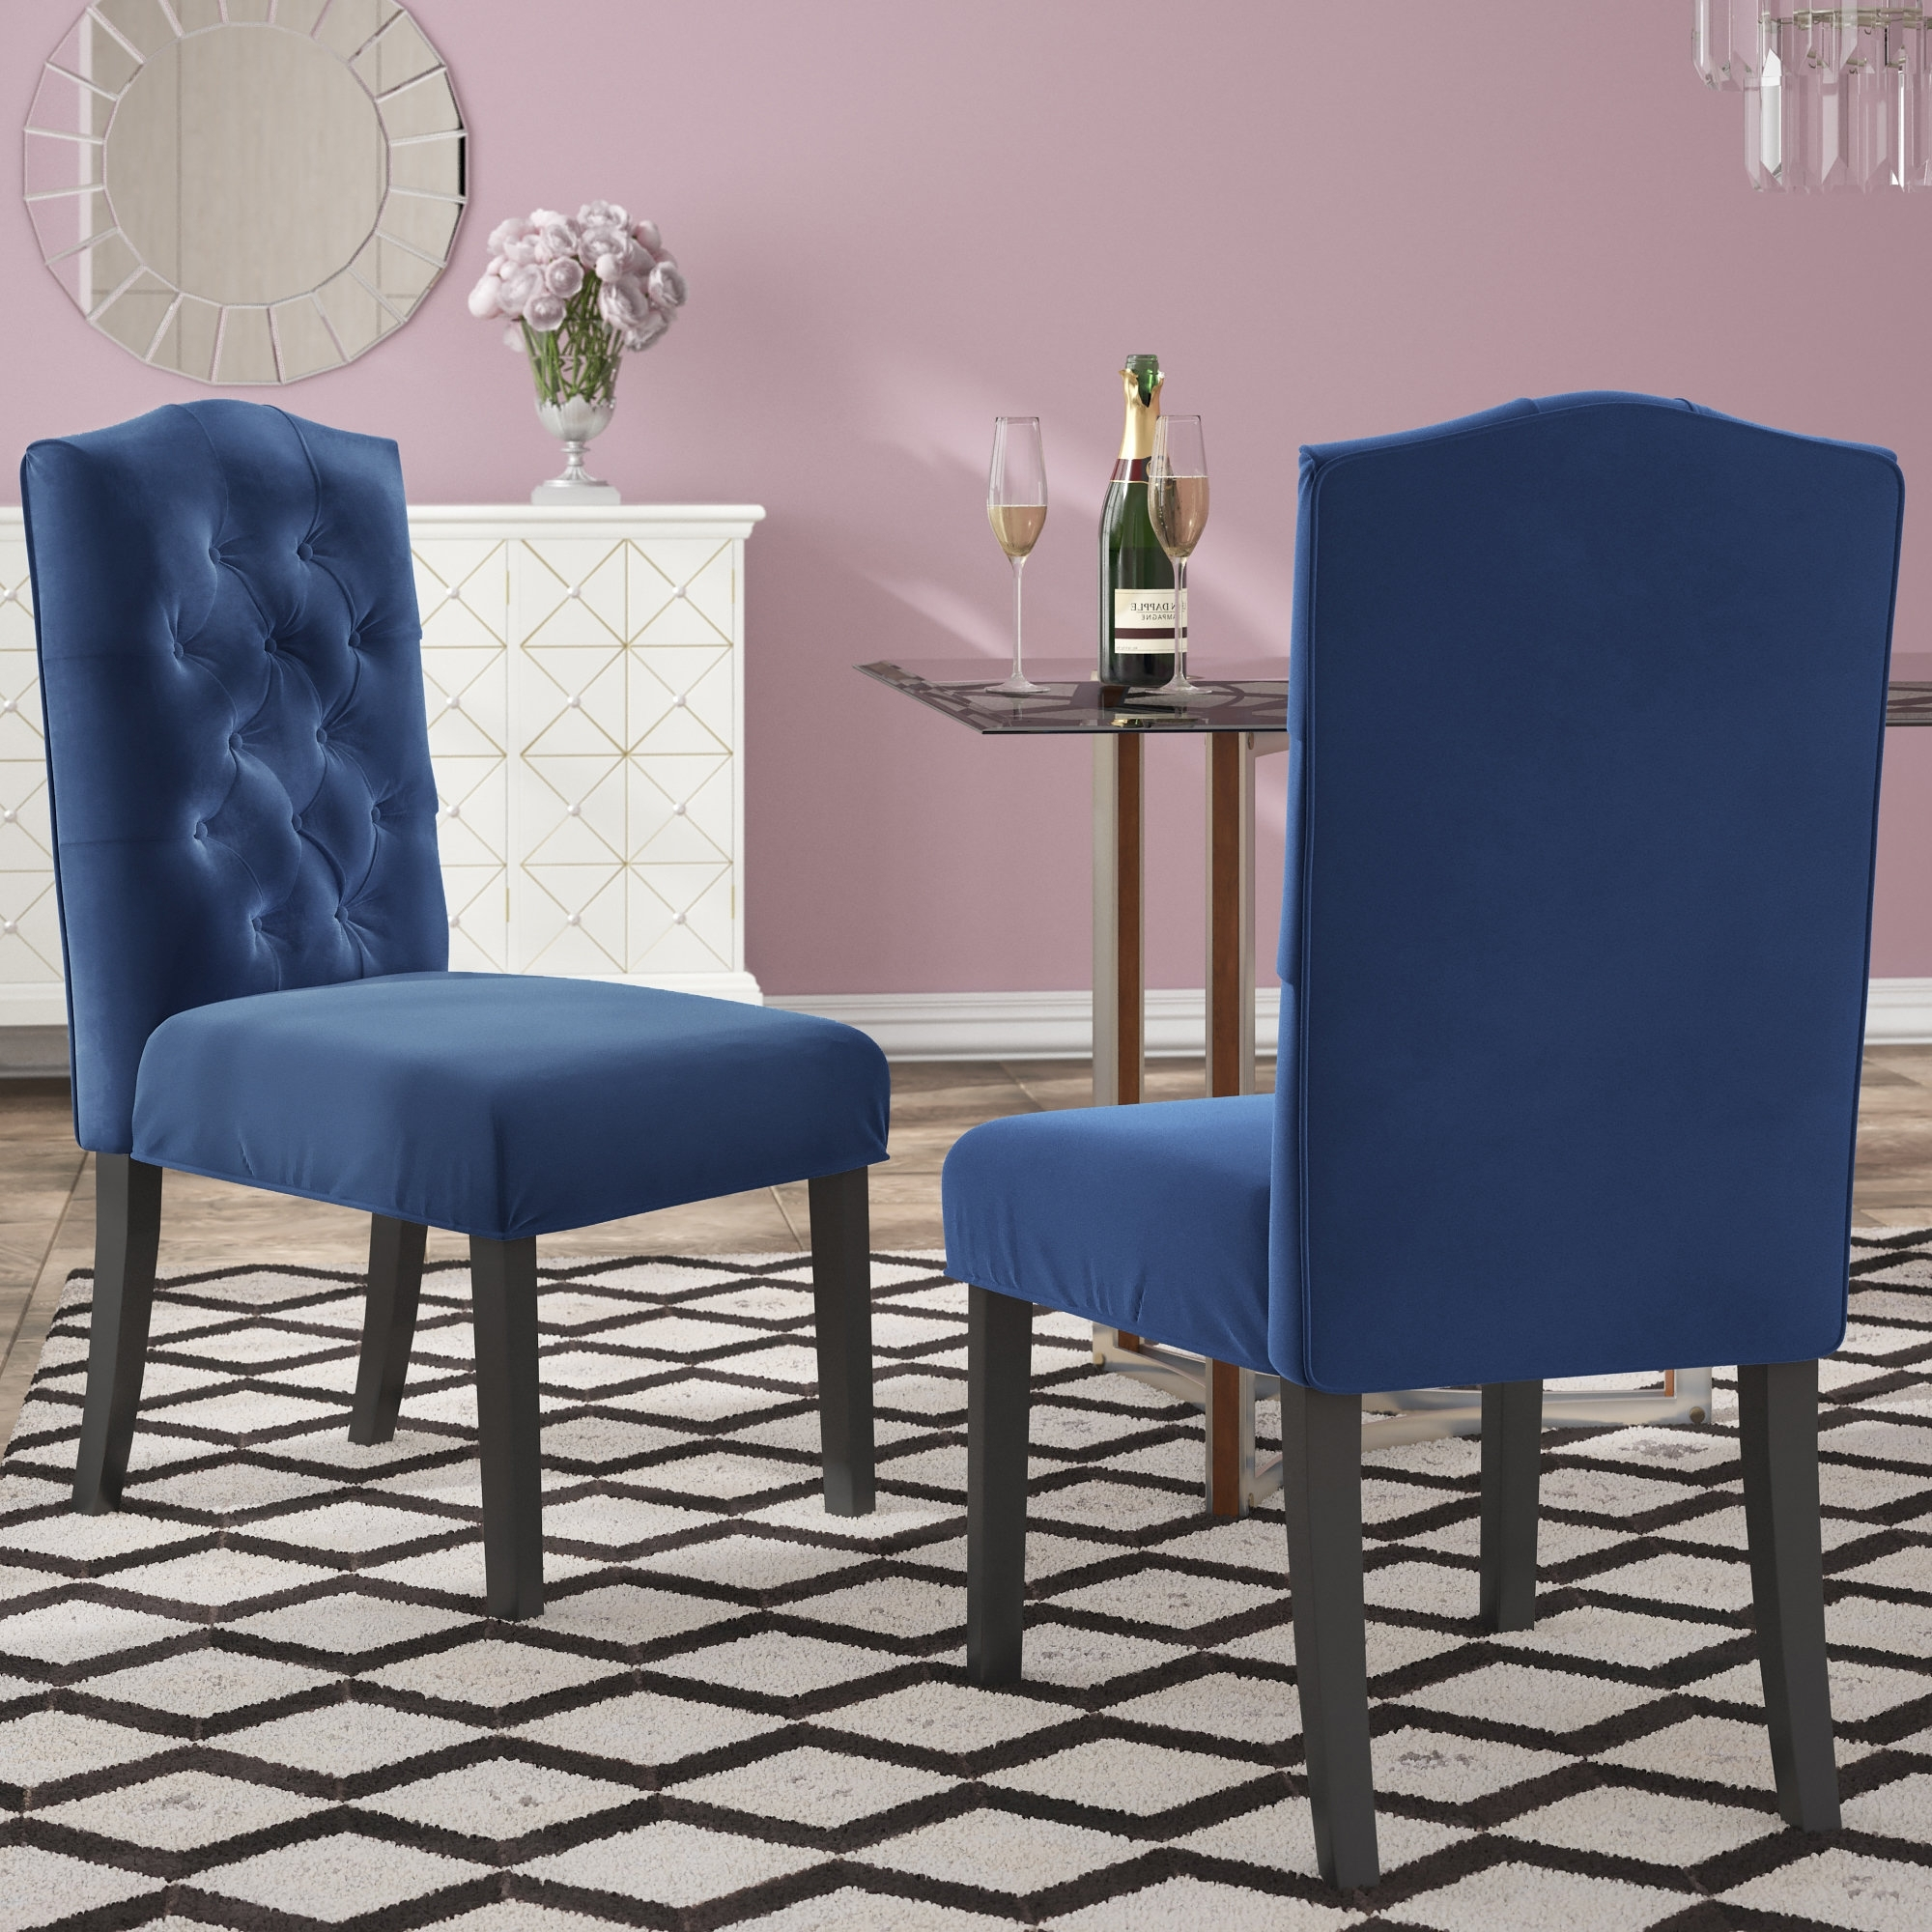 House Of Hampton Menard Traditional Upholstered Dining Chair intended for Most Current Caden 7 Piece Dining Sets With Upholstered Side Chair